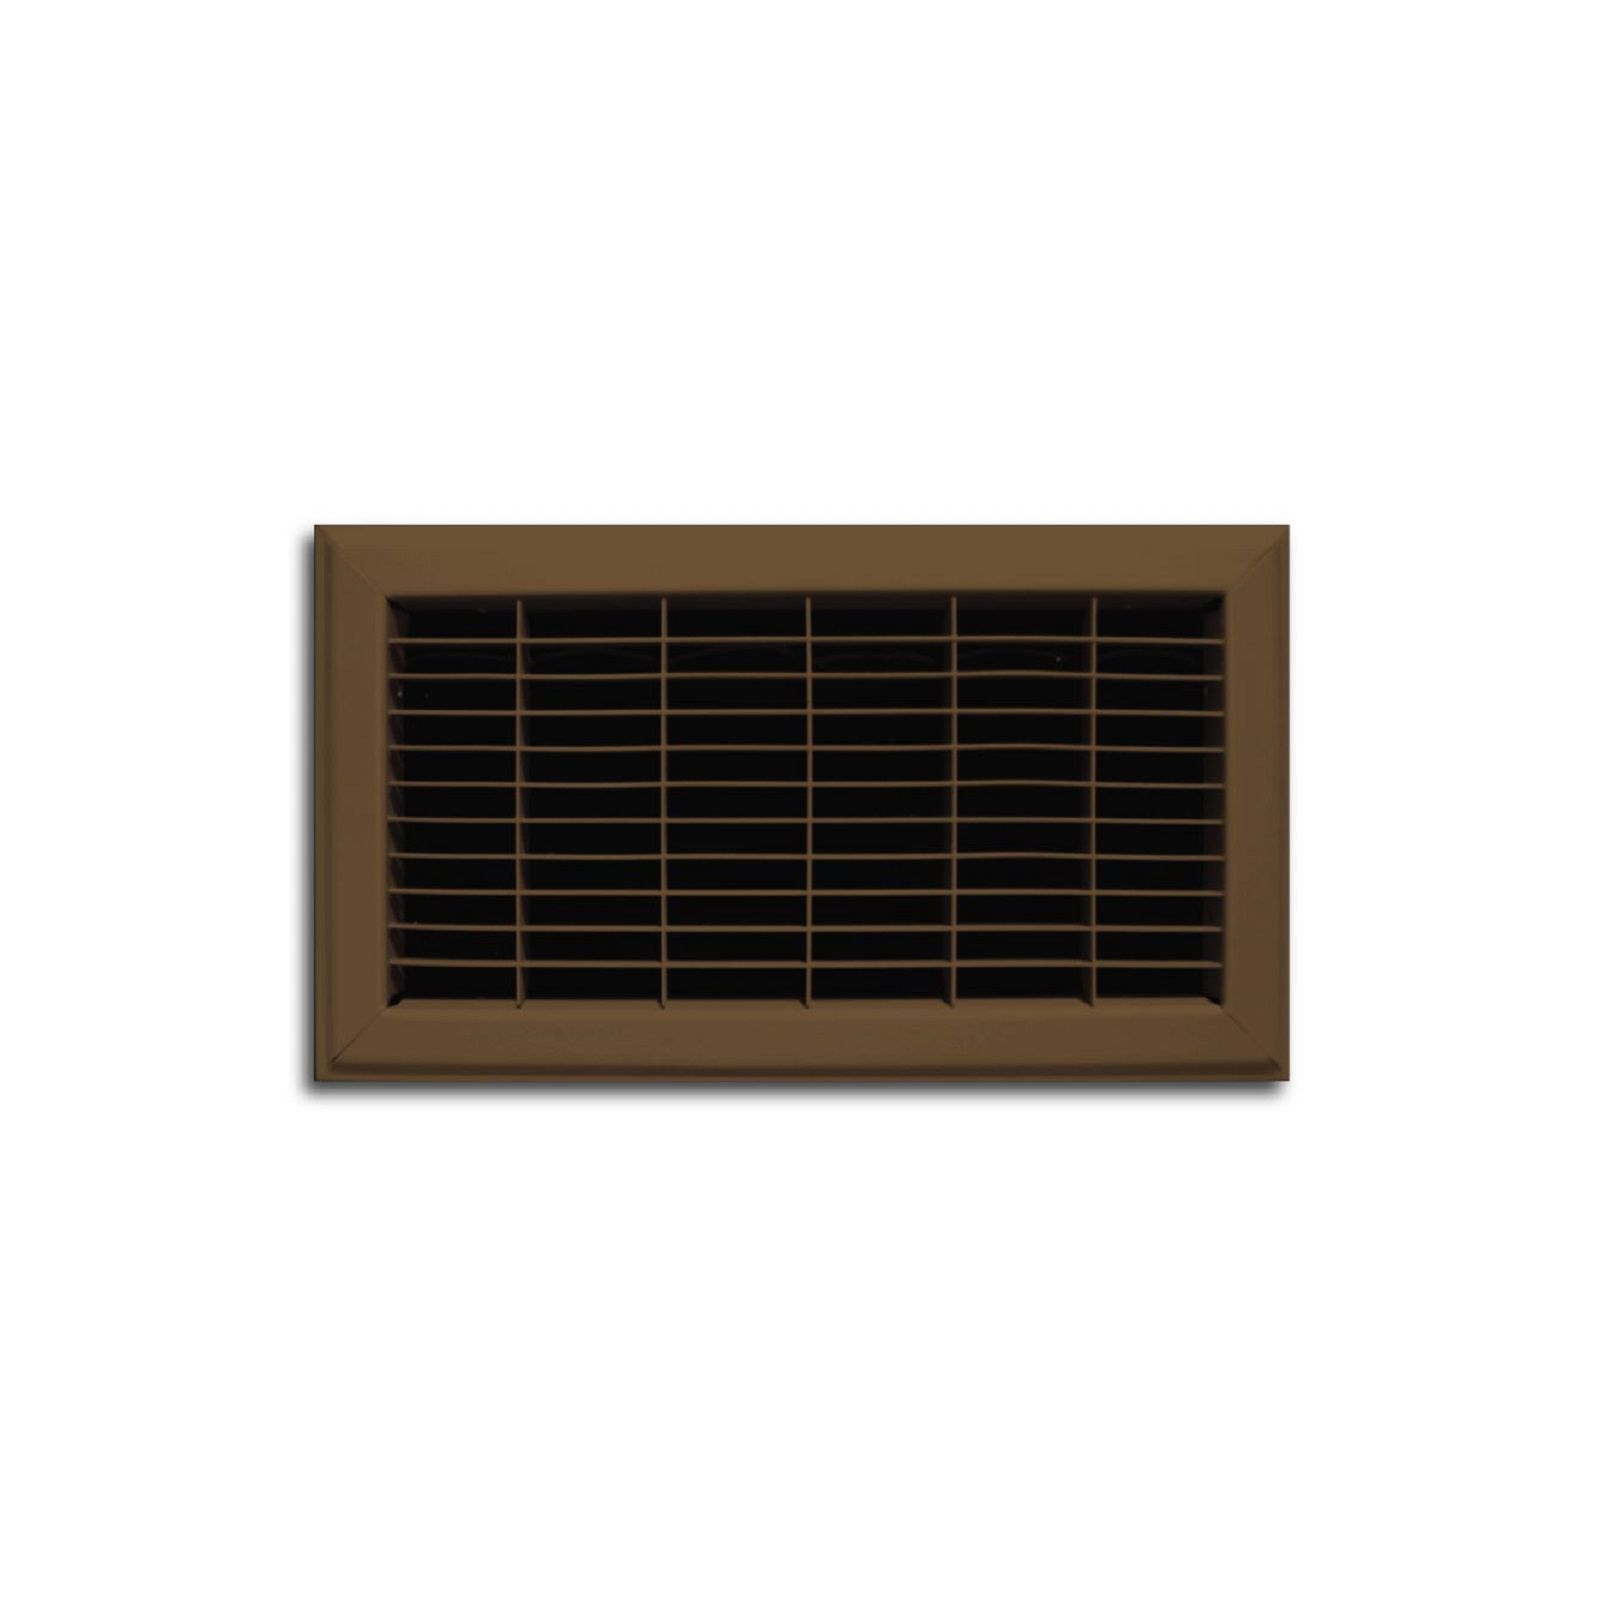 "TRUaire 154R 06X10 - Steel Heavy Gauge Floor Return Air Grille, Brown, 06"" X 10"""